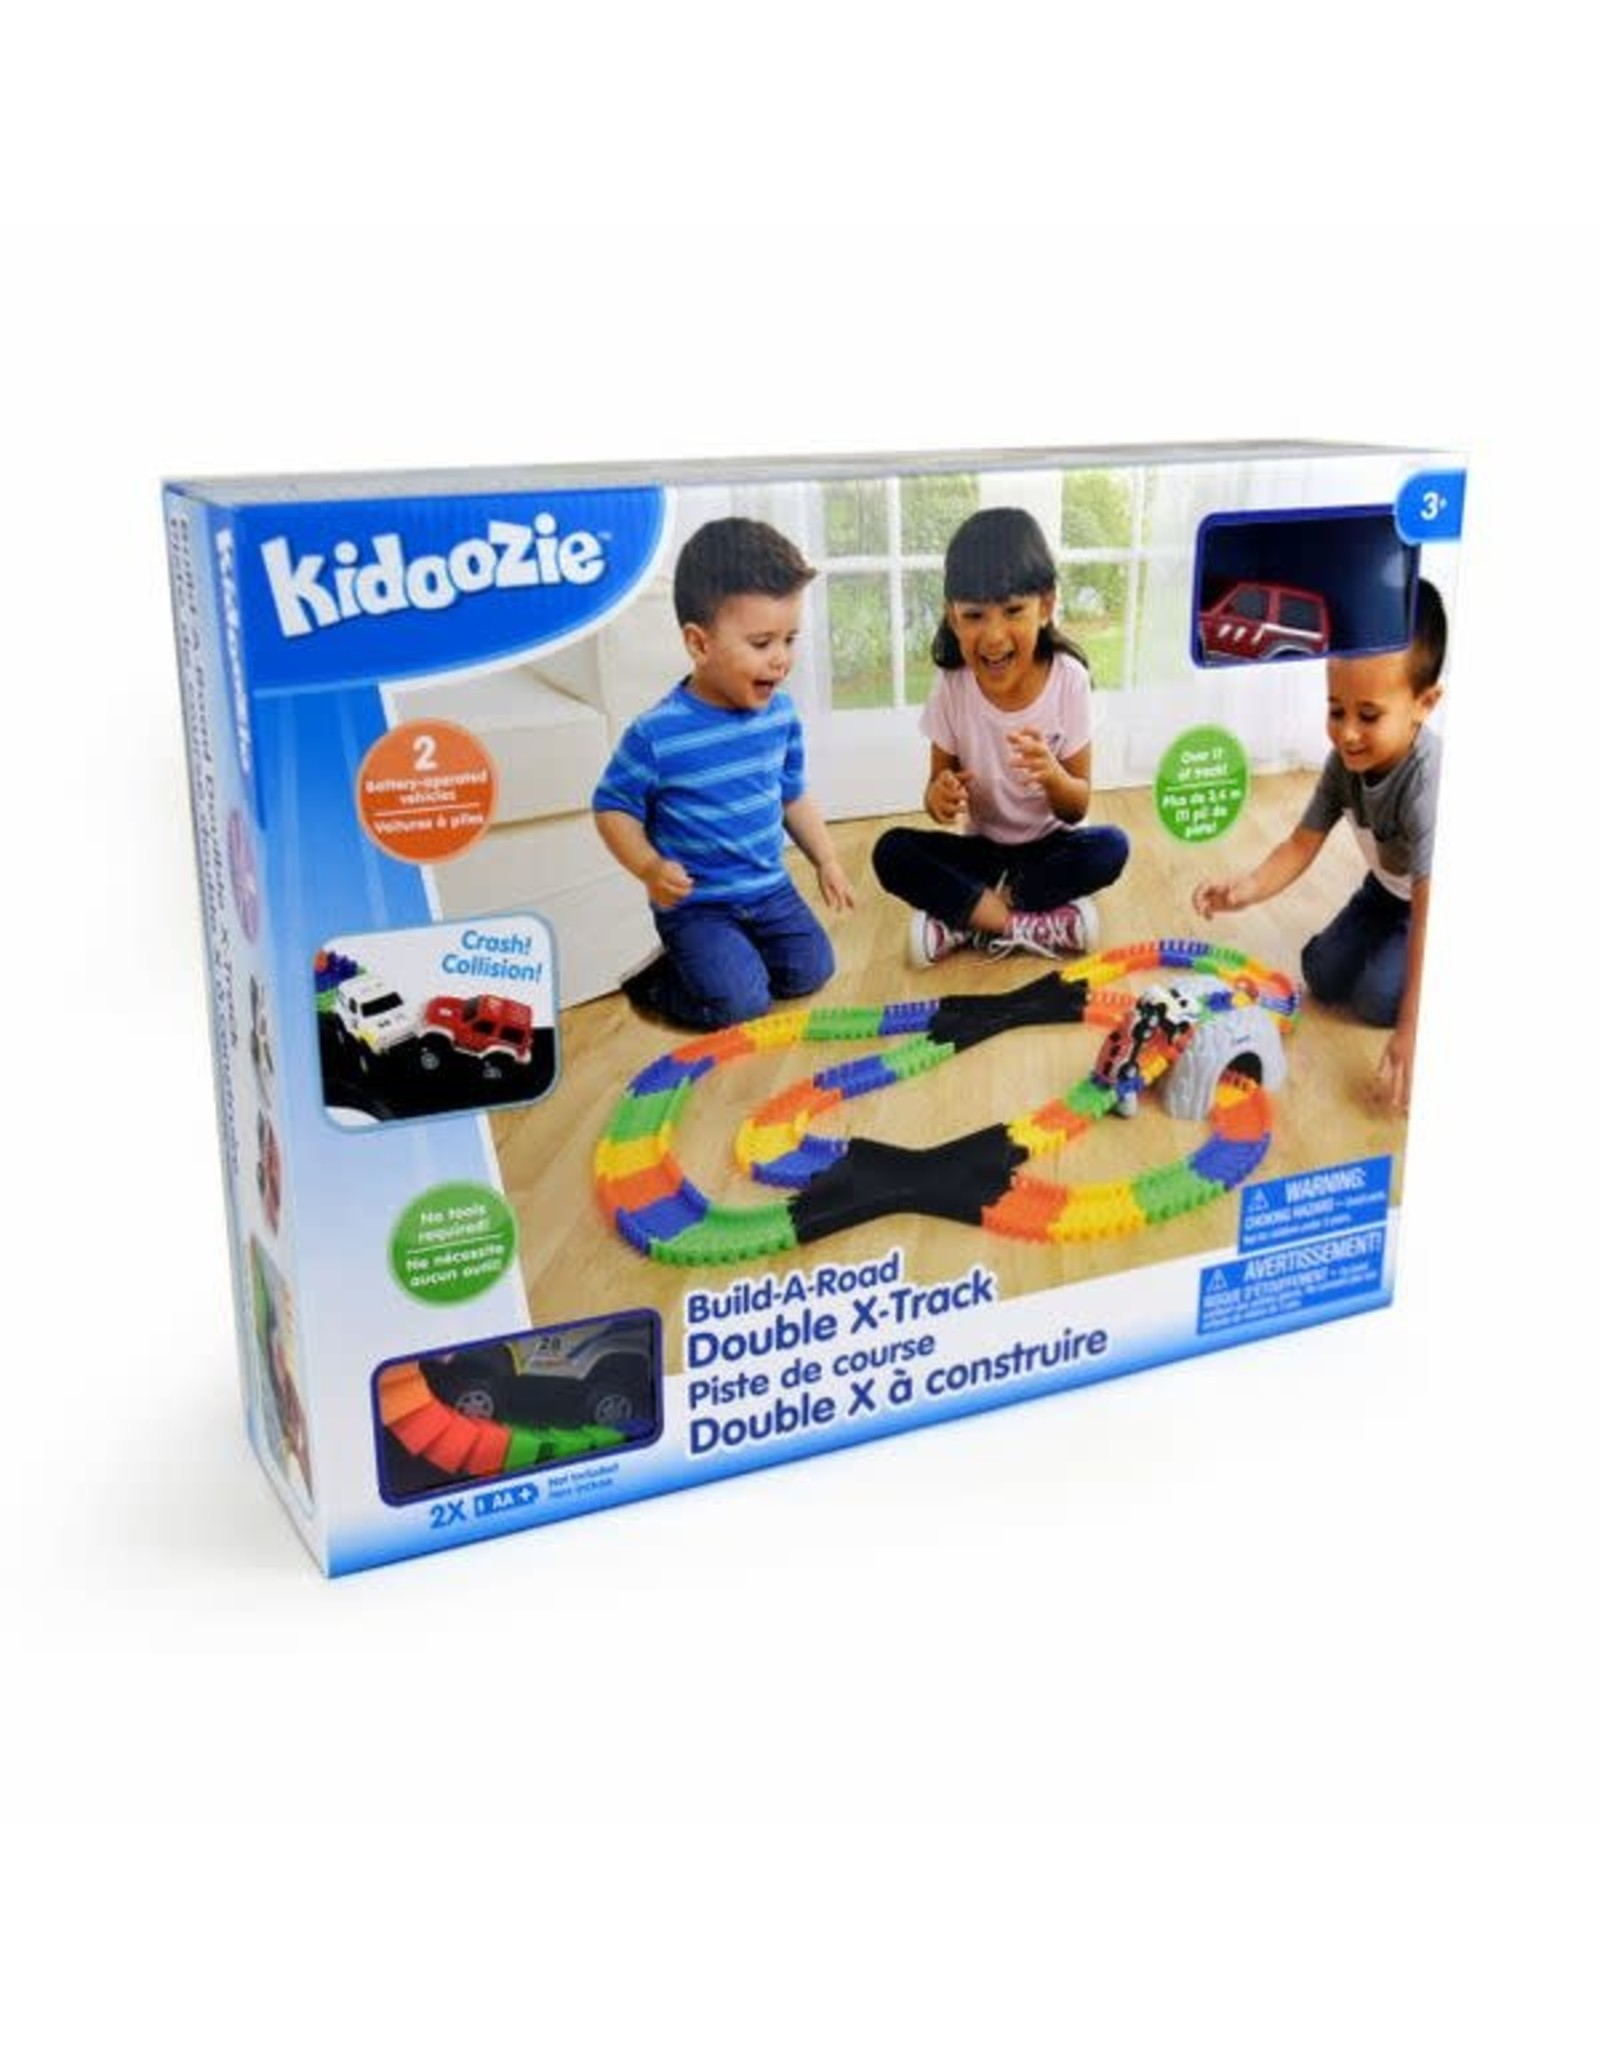 Build-a-Road Double X-Track Kidoozie